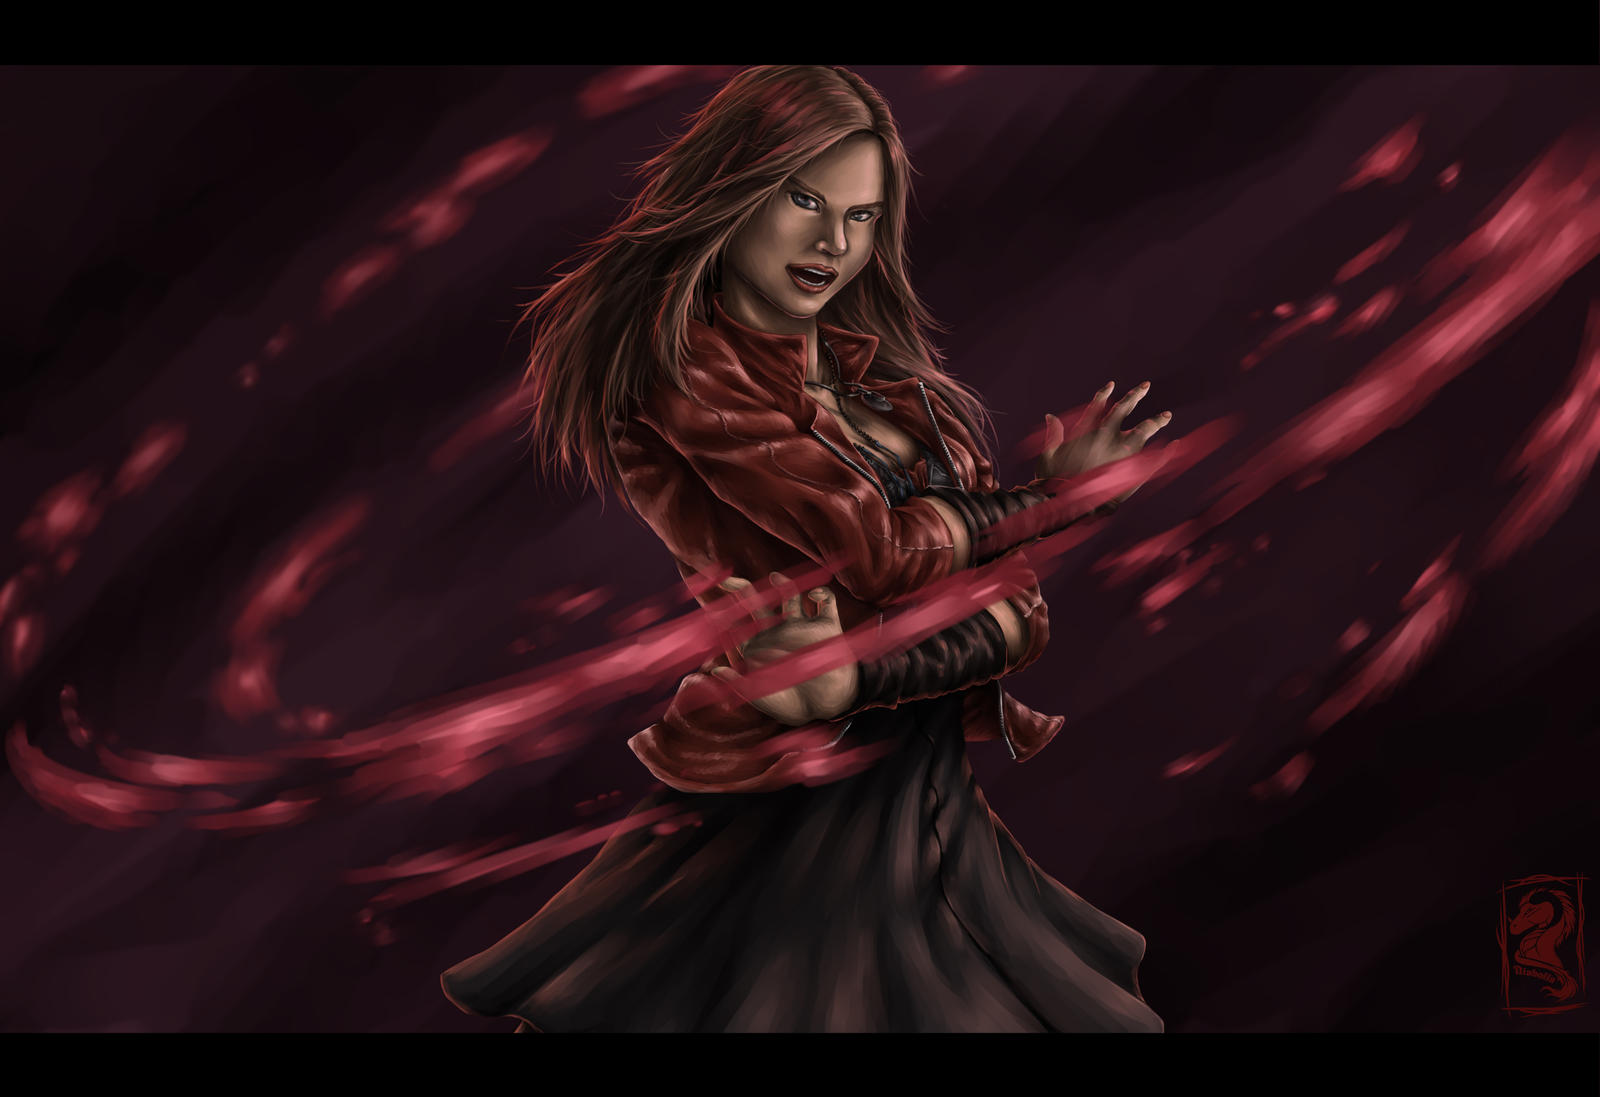 Simple Wallpaper Marvel Scarlet Witch - fan_art__scarlet_witch___wanda_maximoff_by_niabolla-d7yko5x  Collection_578365.jpg